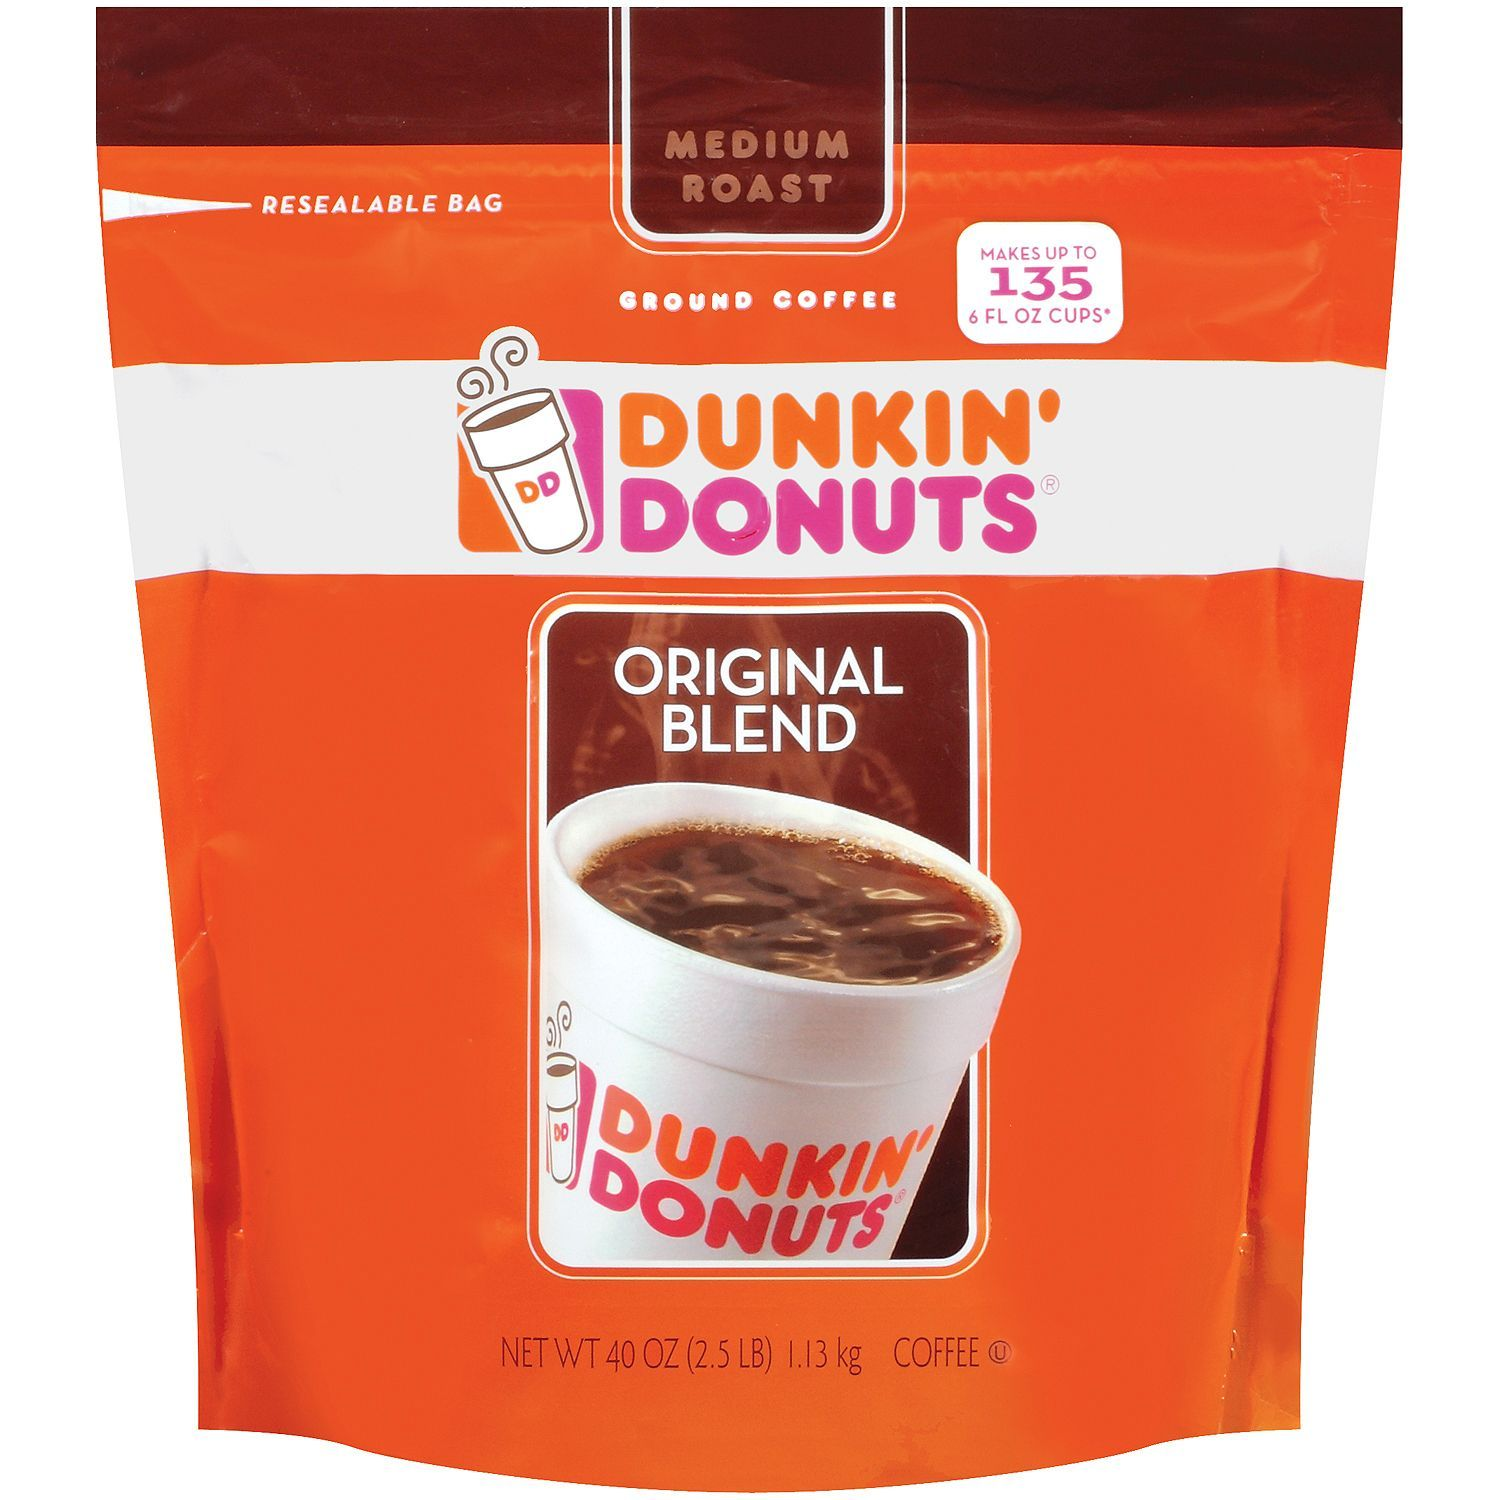 Pin by Amy DeBurgh on Food Dunkin donuts coffee, Coffee